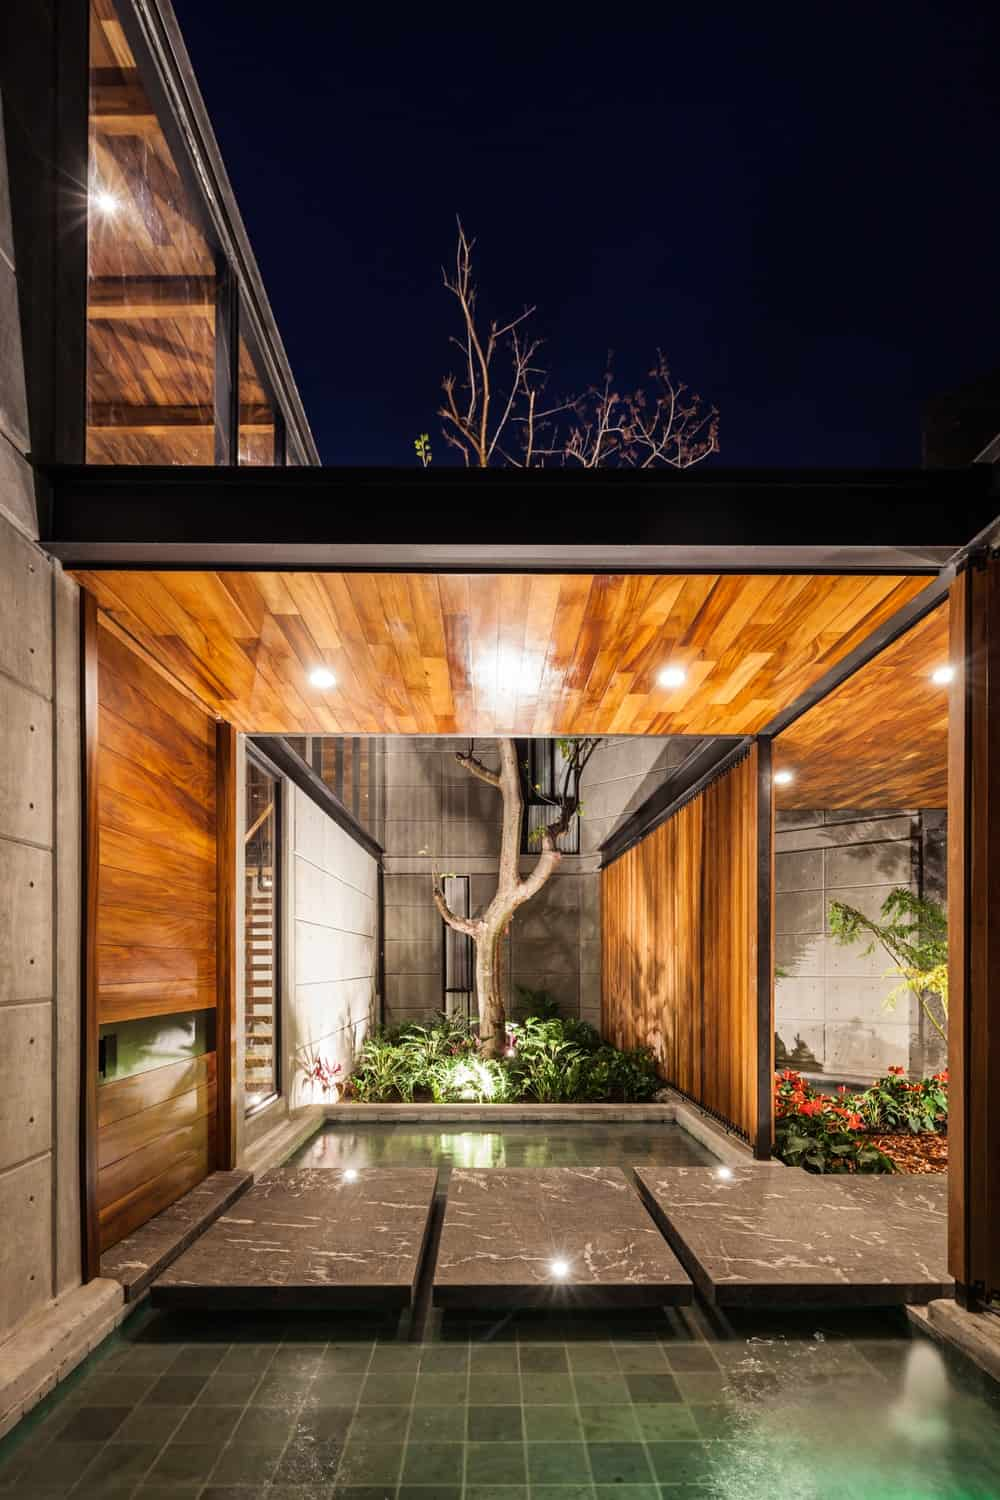 Night view of the entryway in the Casa Kaleth designed by Di Frenna Arquitectos.